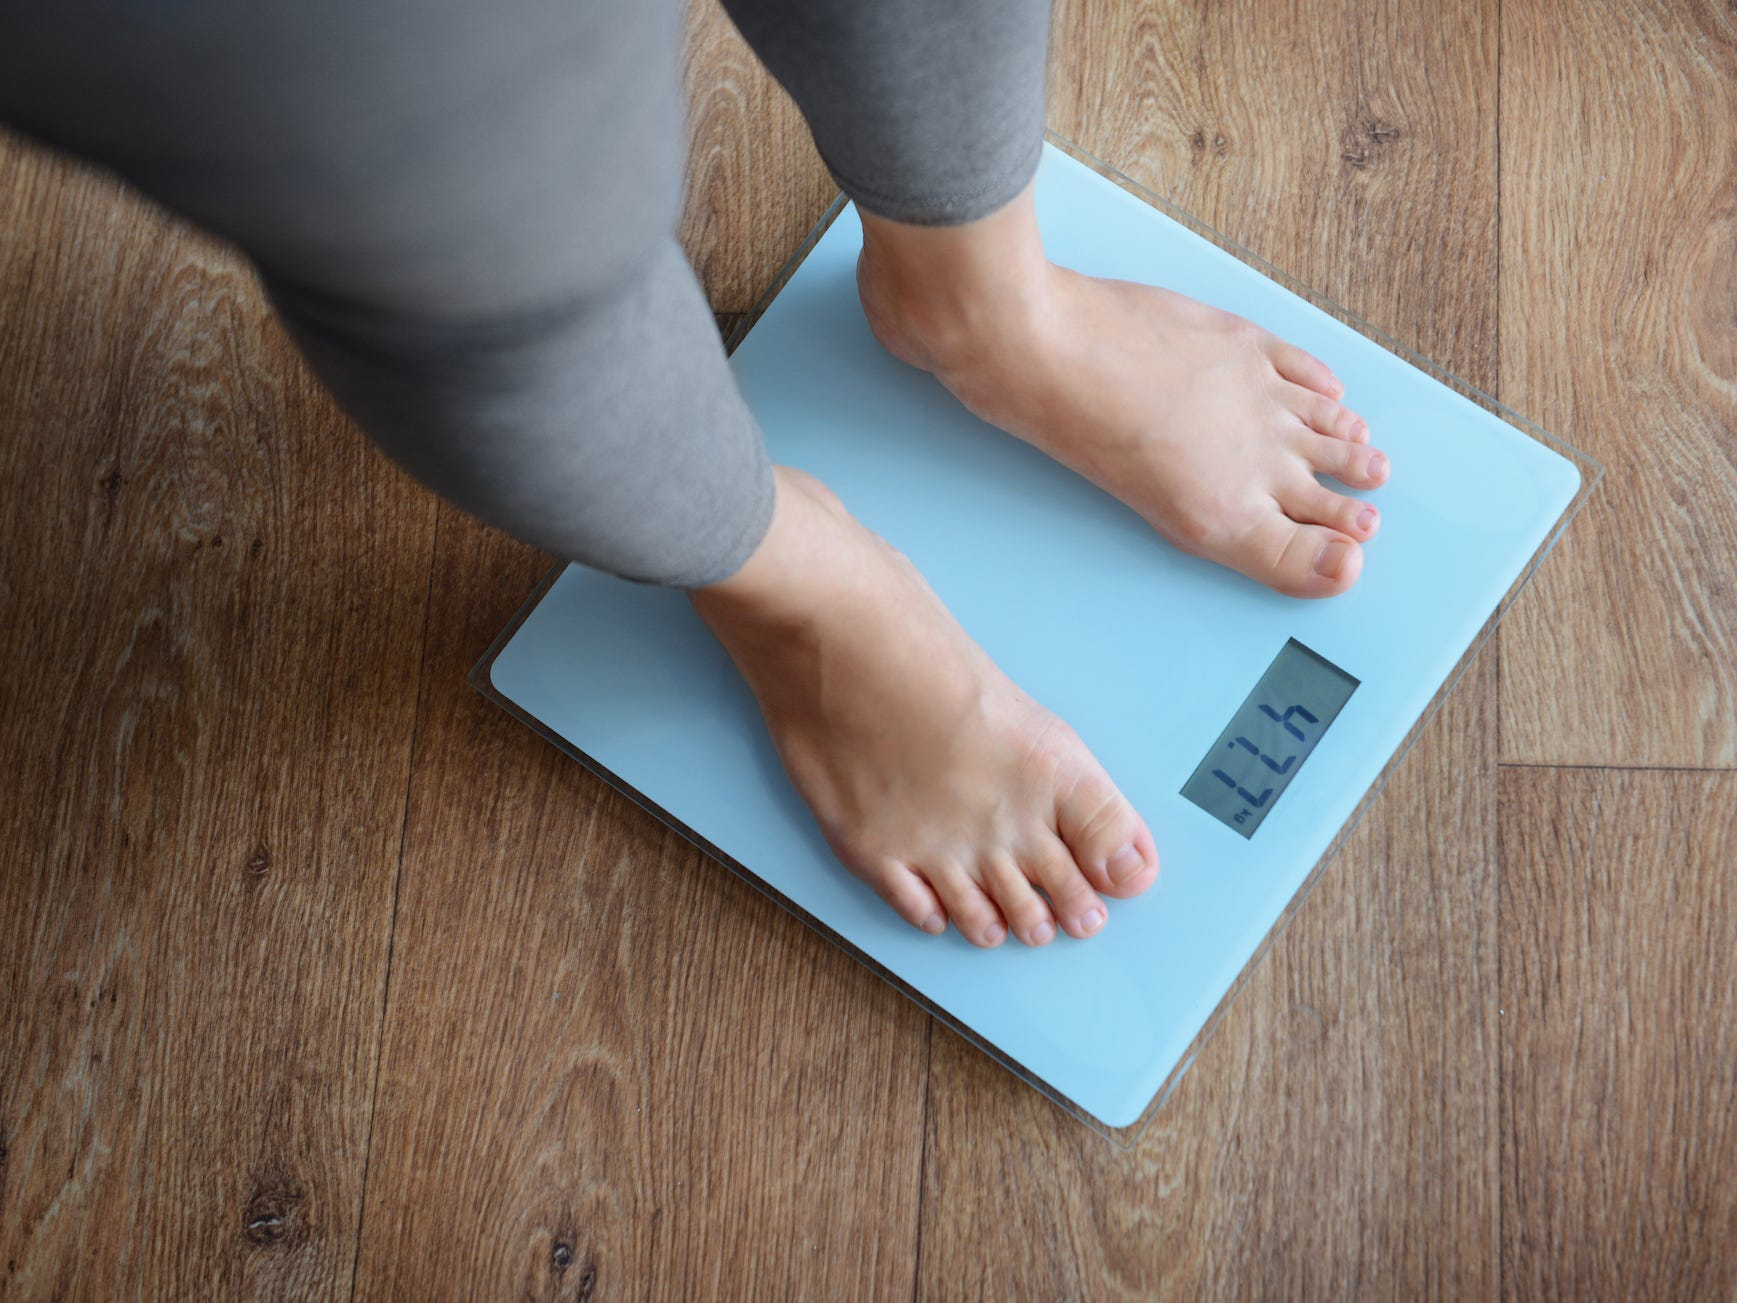 Weight and BMI are losing their usefulness, according to several studies.